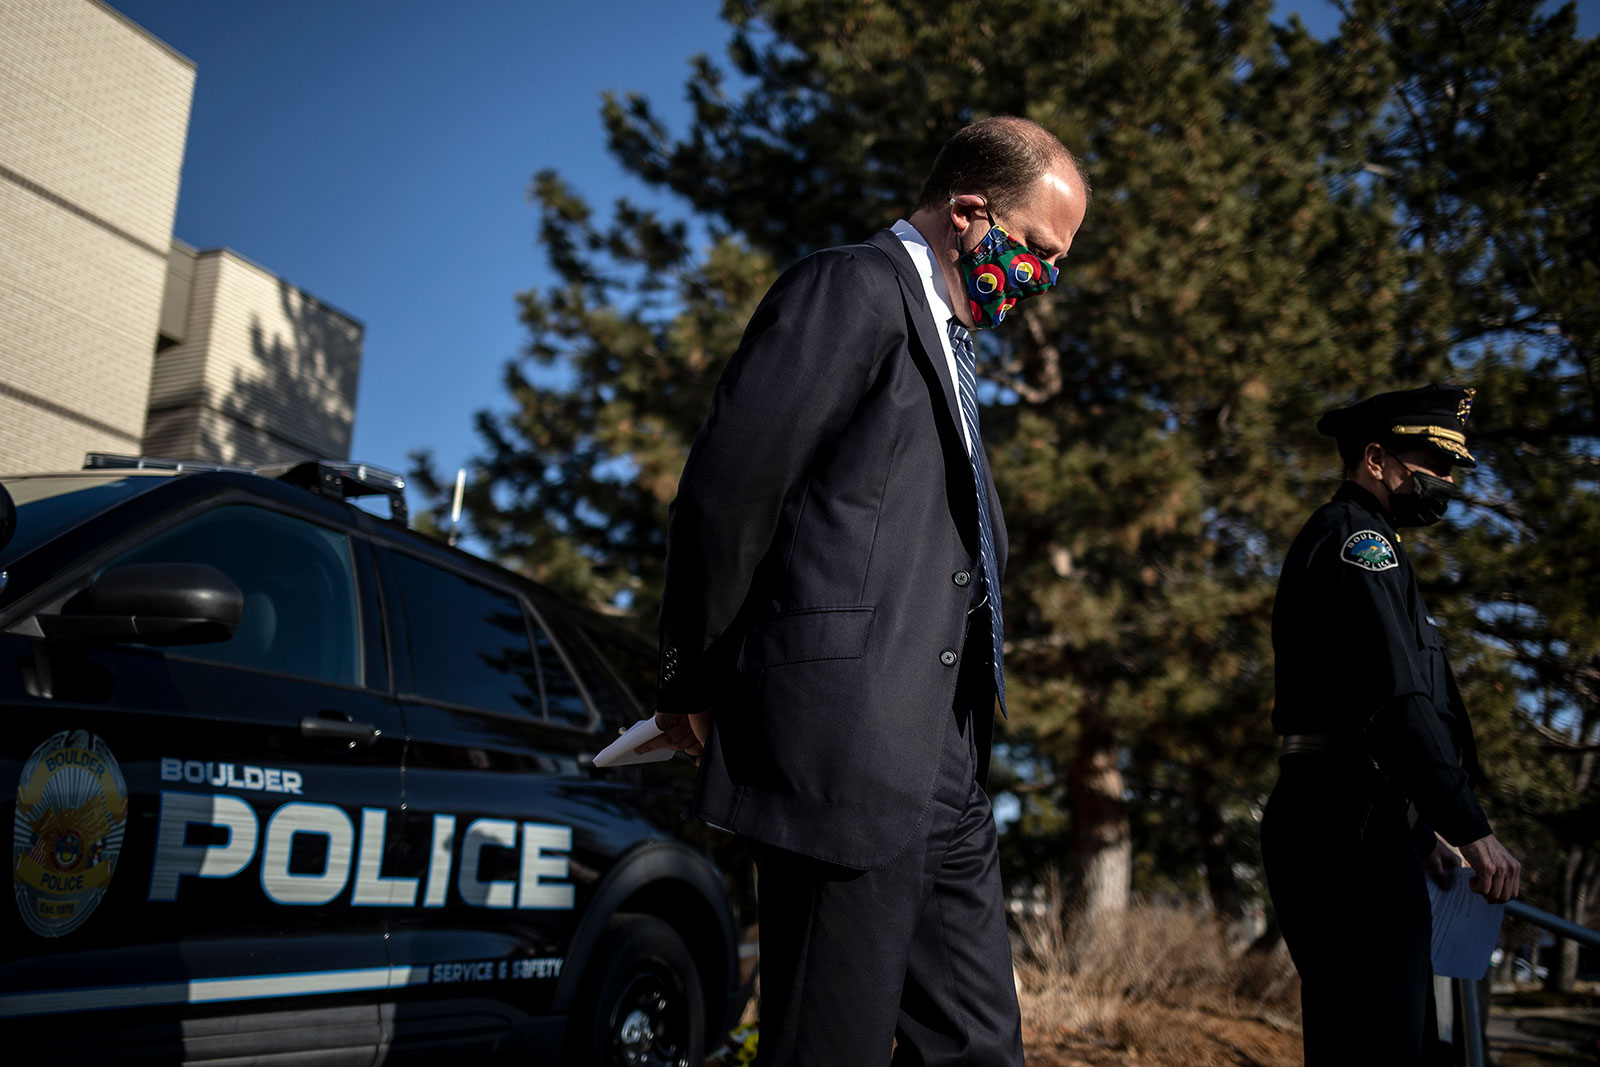 Colorado Gov. Jared Polis attends a press conference in Boulder, Colorado, on March 23.